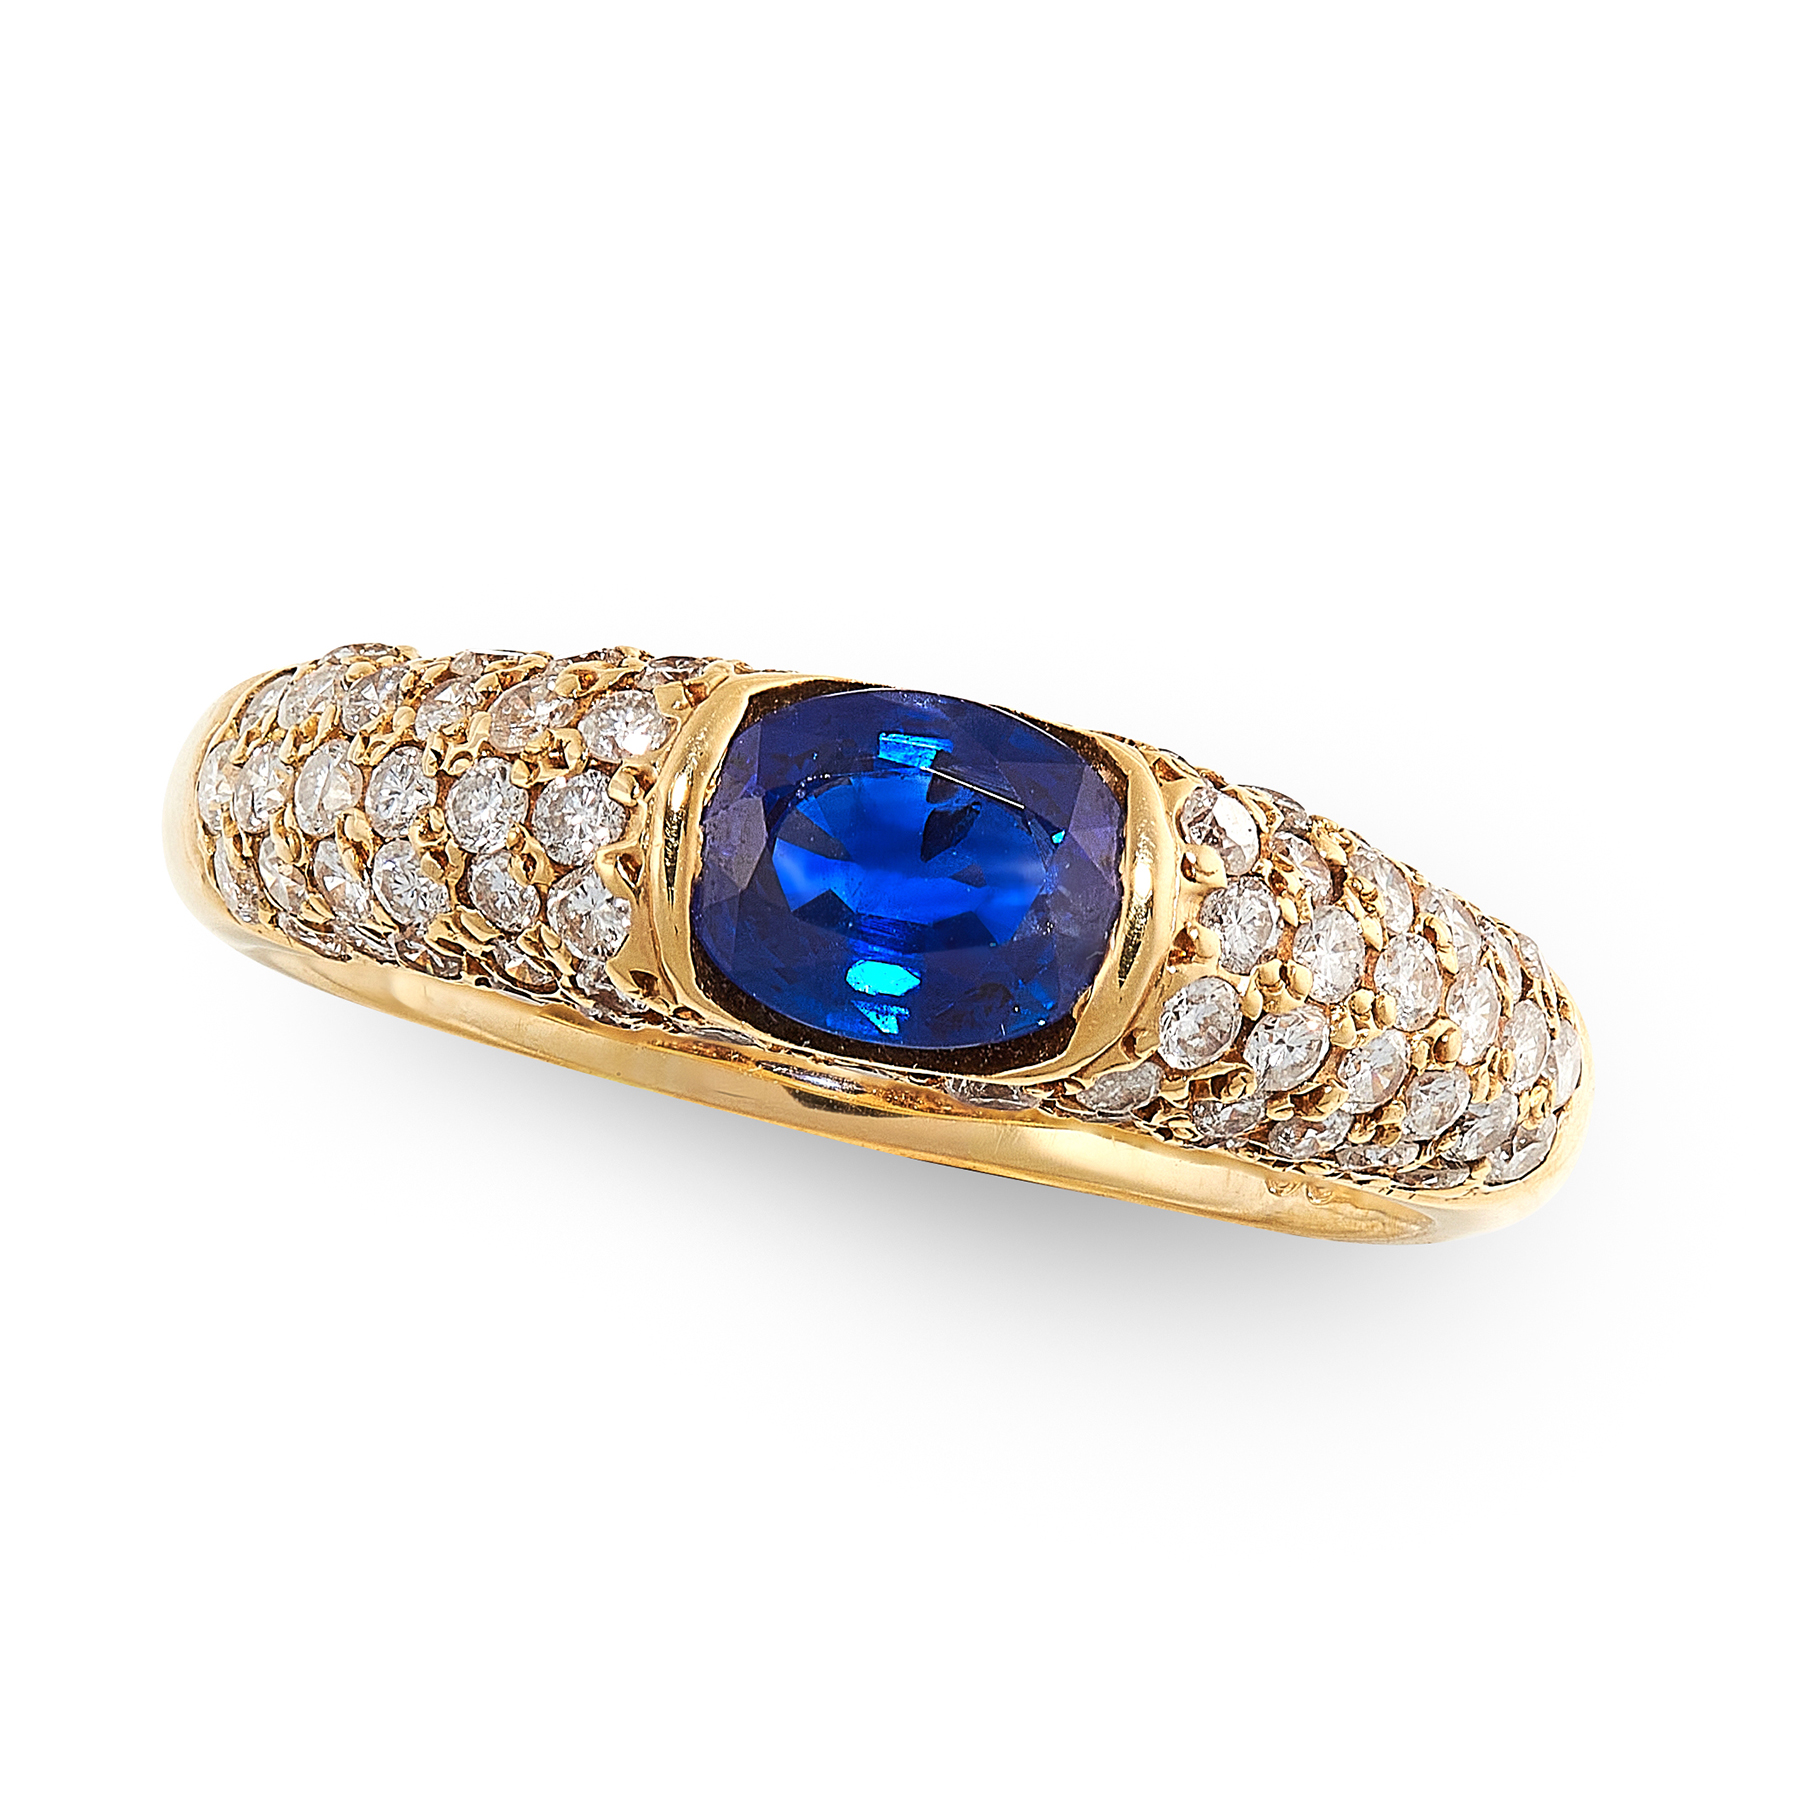 A TANZANITE AND DIAMOND RING in 18ct yellow gold, in elipse style, set with a cushion cut